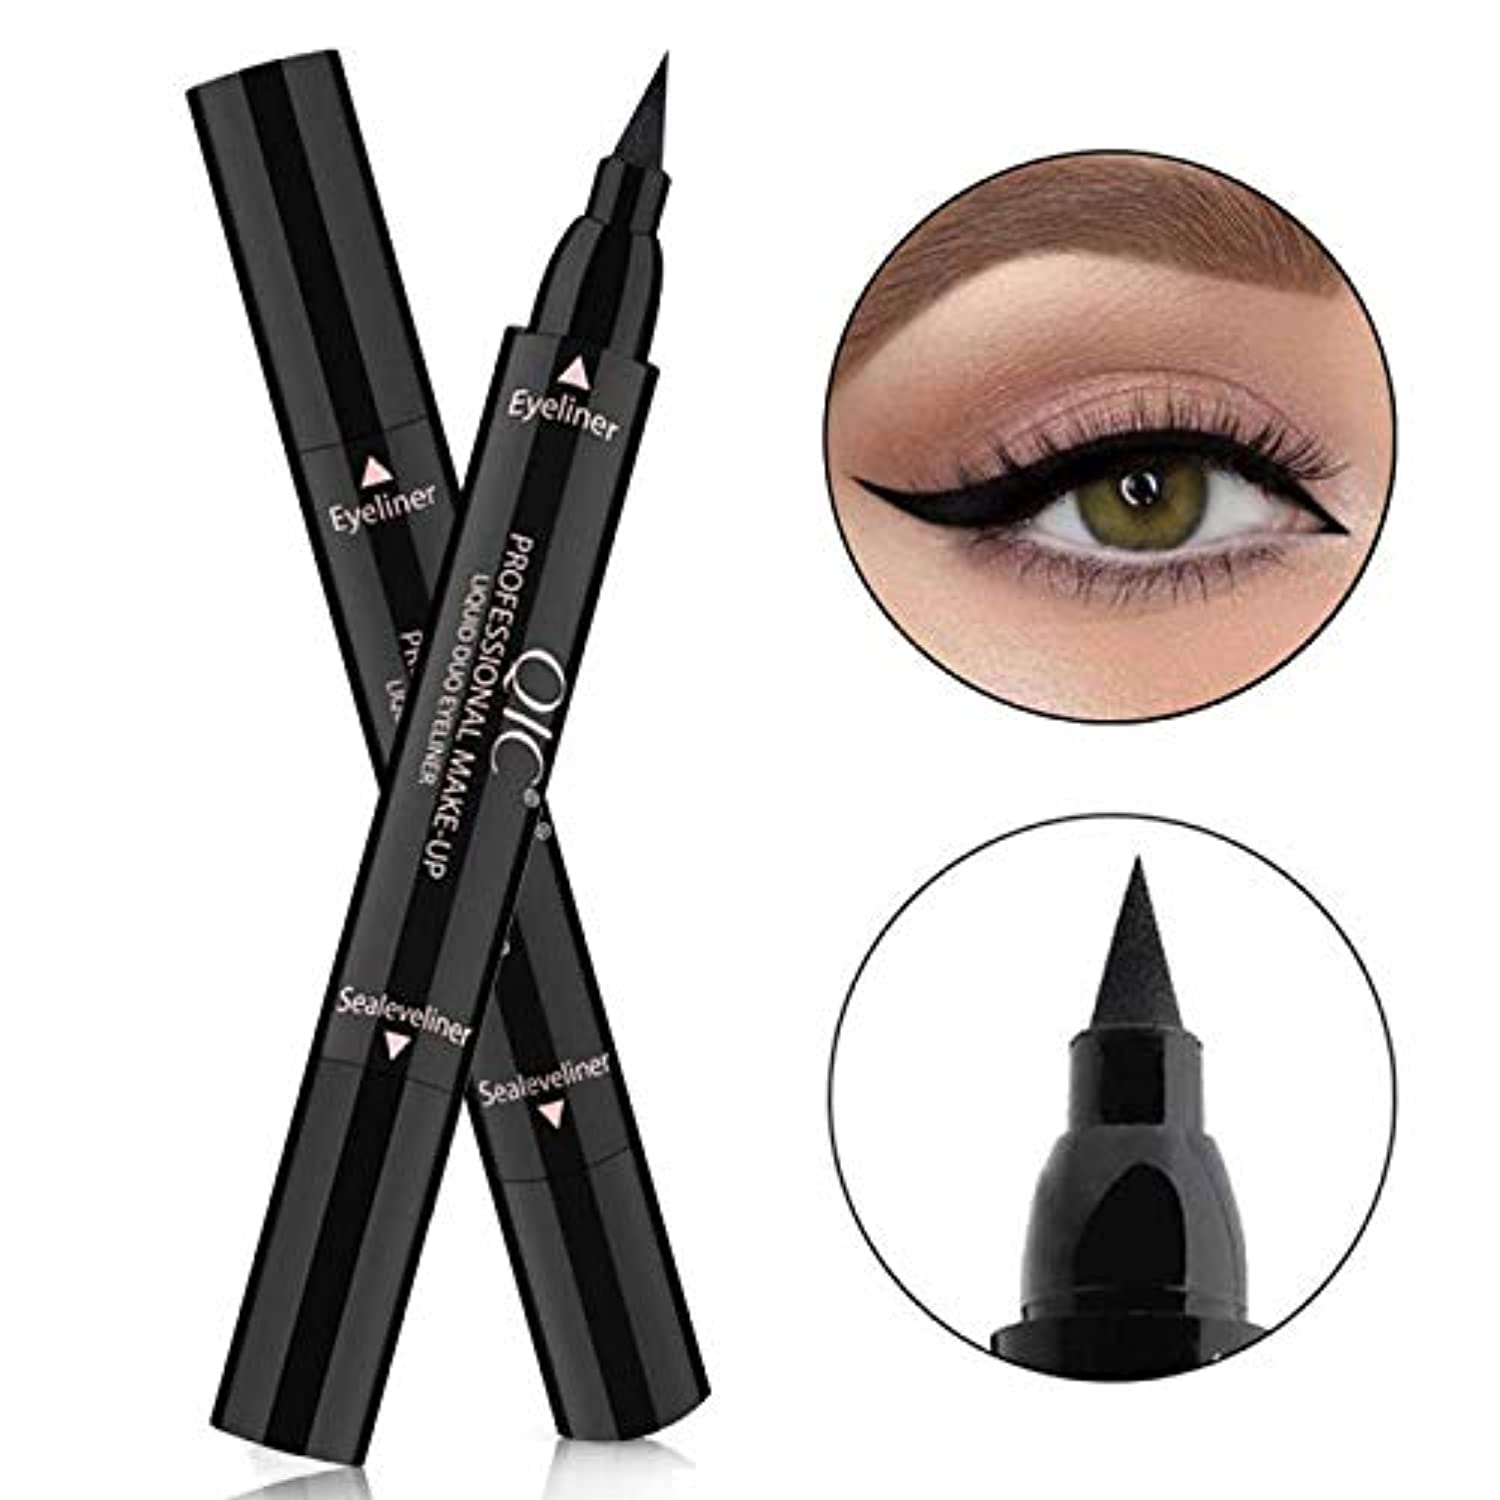 4D Silk Fiber Eye Lash Mascara With Eyeliner Stamp, Liquid Extension - smrt-life.com